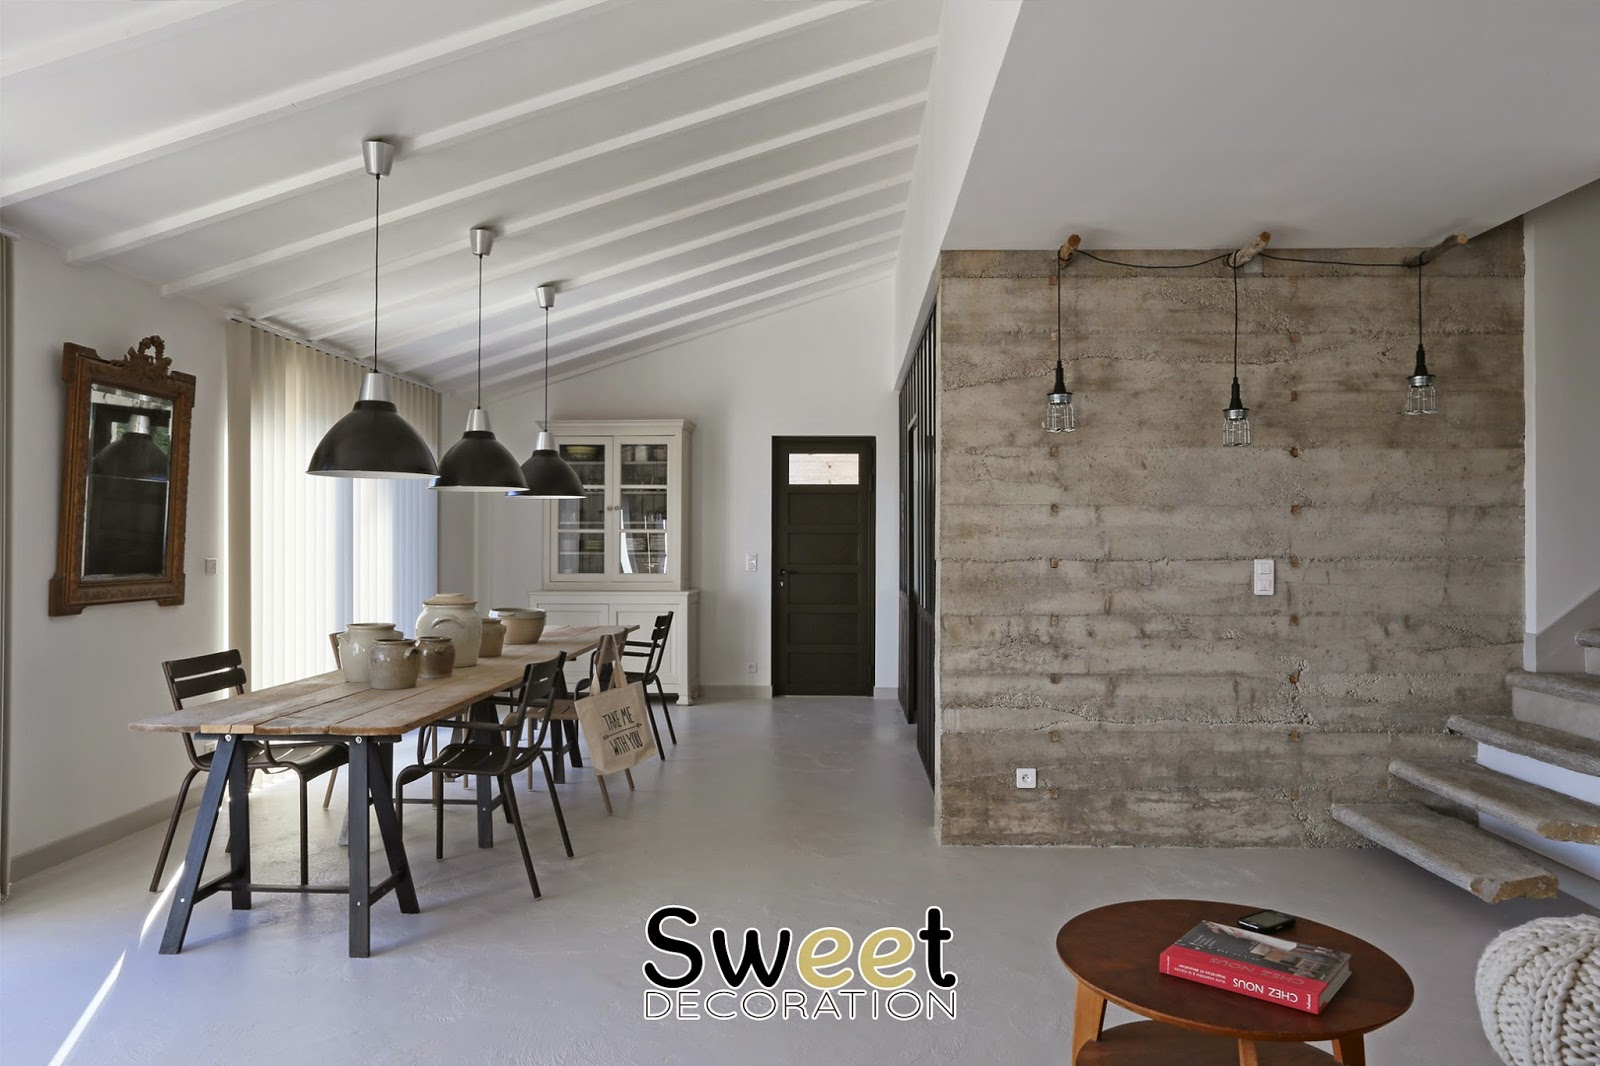 Am nagement int rieur d 39 une maison contemporaine sweet for Photo interieur maison